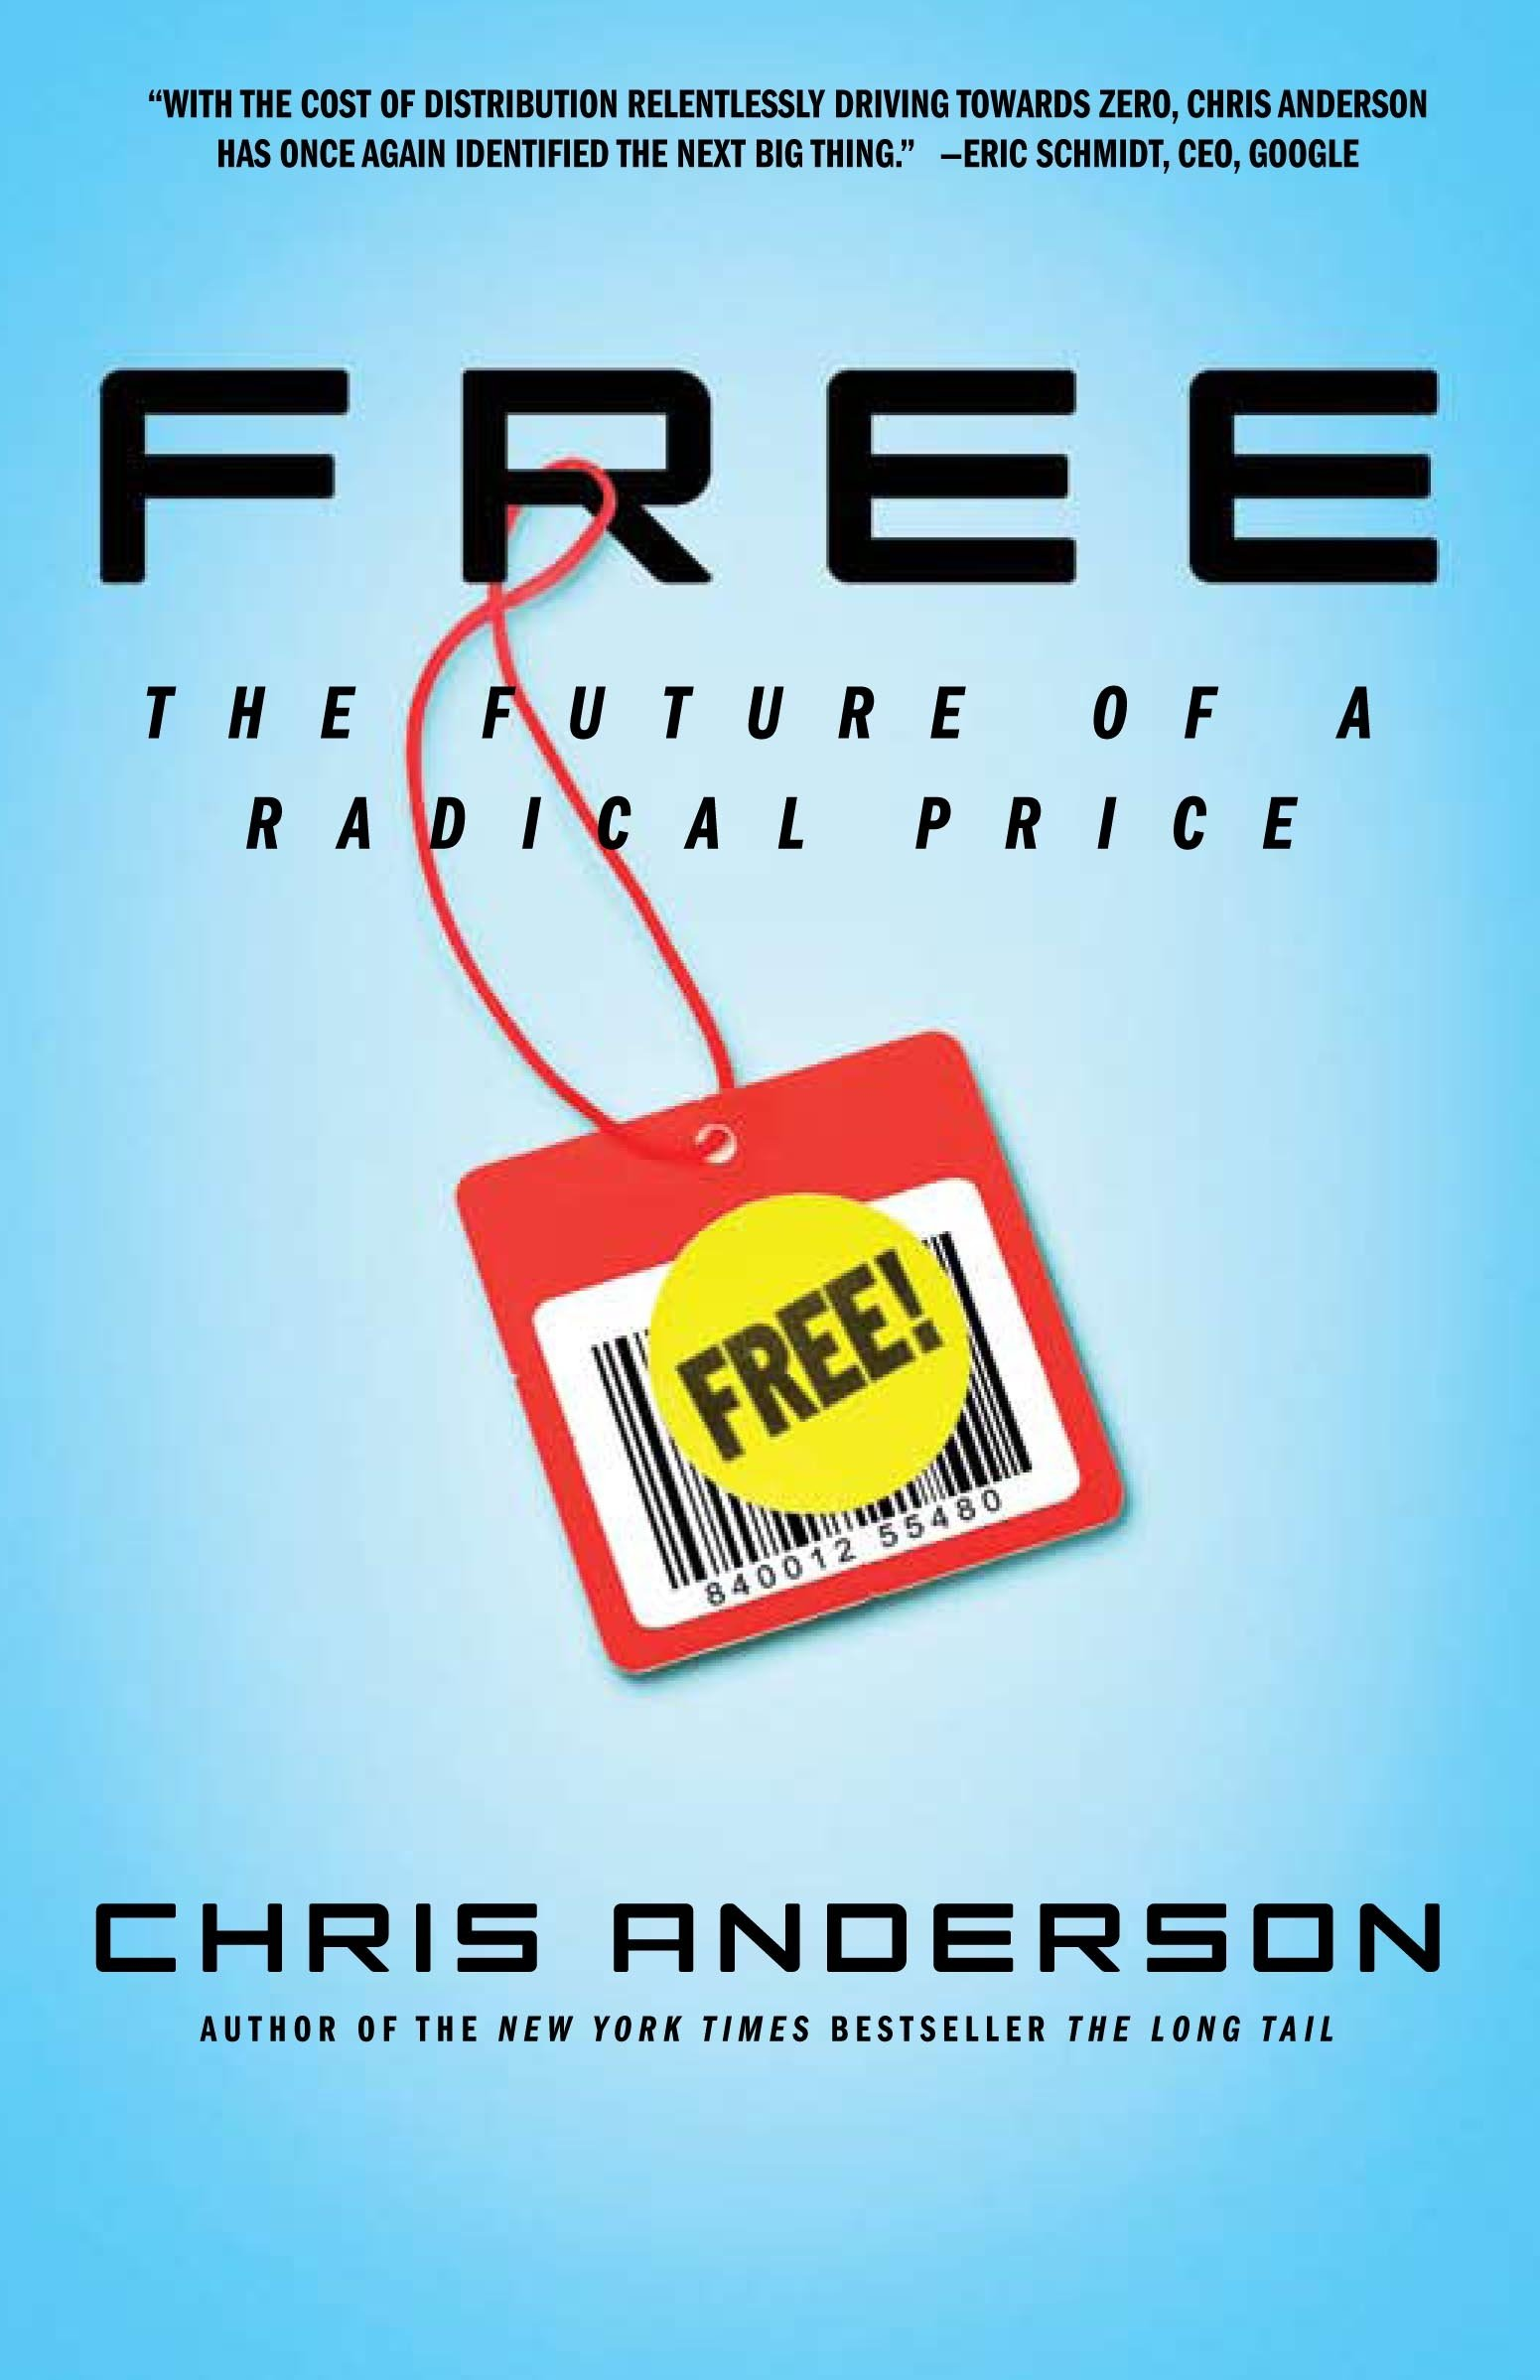 Free: The Future of a Radical Price - Chris Anderson - reviews for audiobook - reviews, quotes, summary